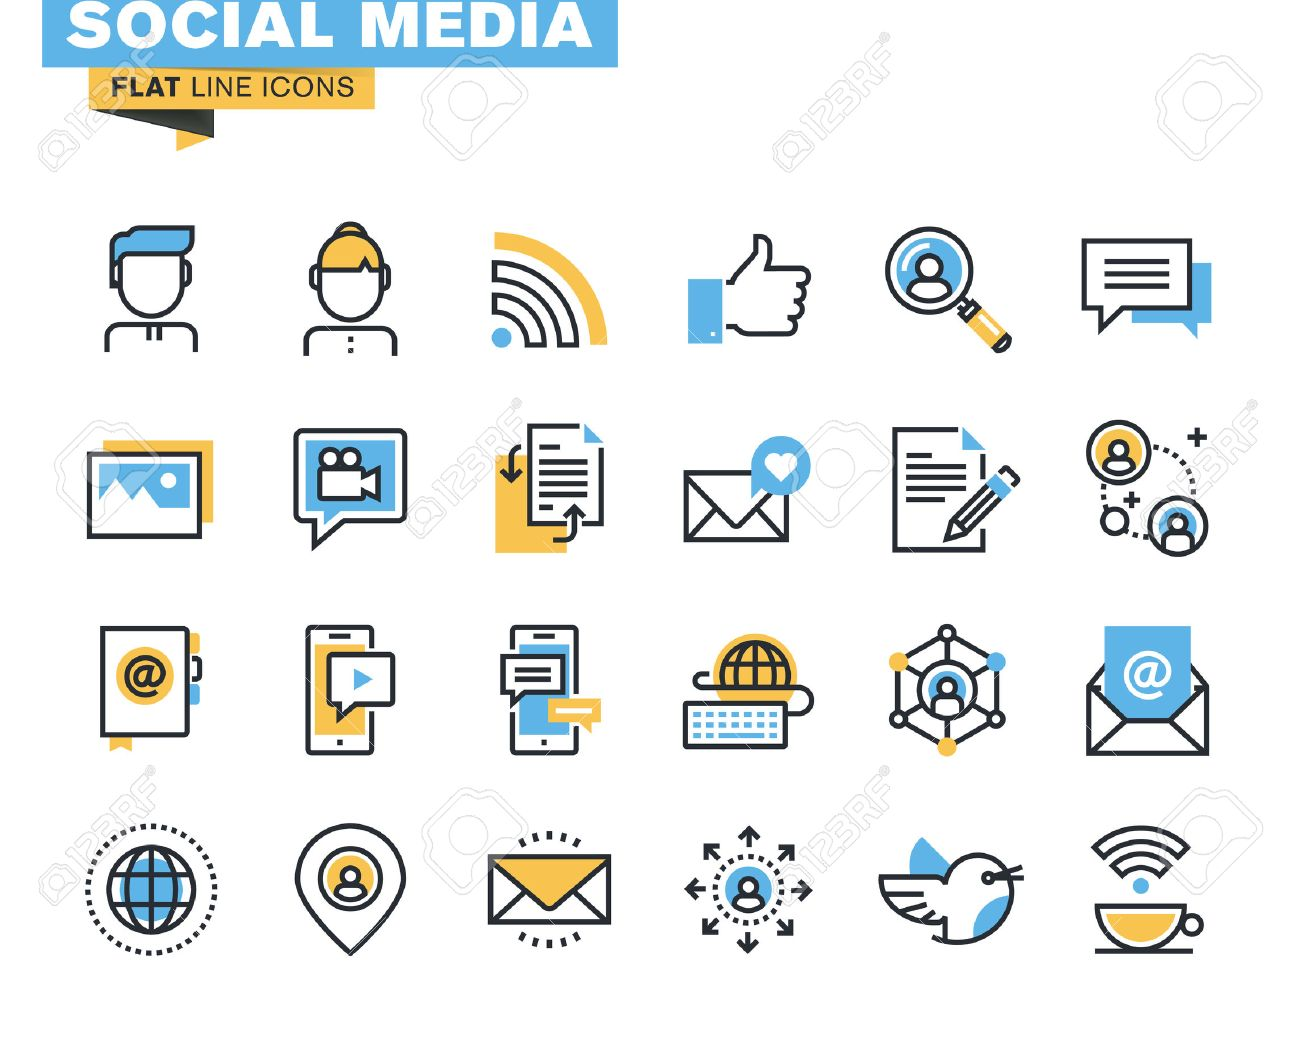 Trendy flat line icon pack for designers and developers. Icons for social media, social network, communication, digital marketing, for websites and mobile websites and apps. - 45836709